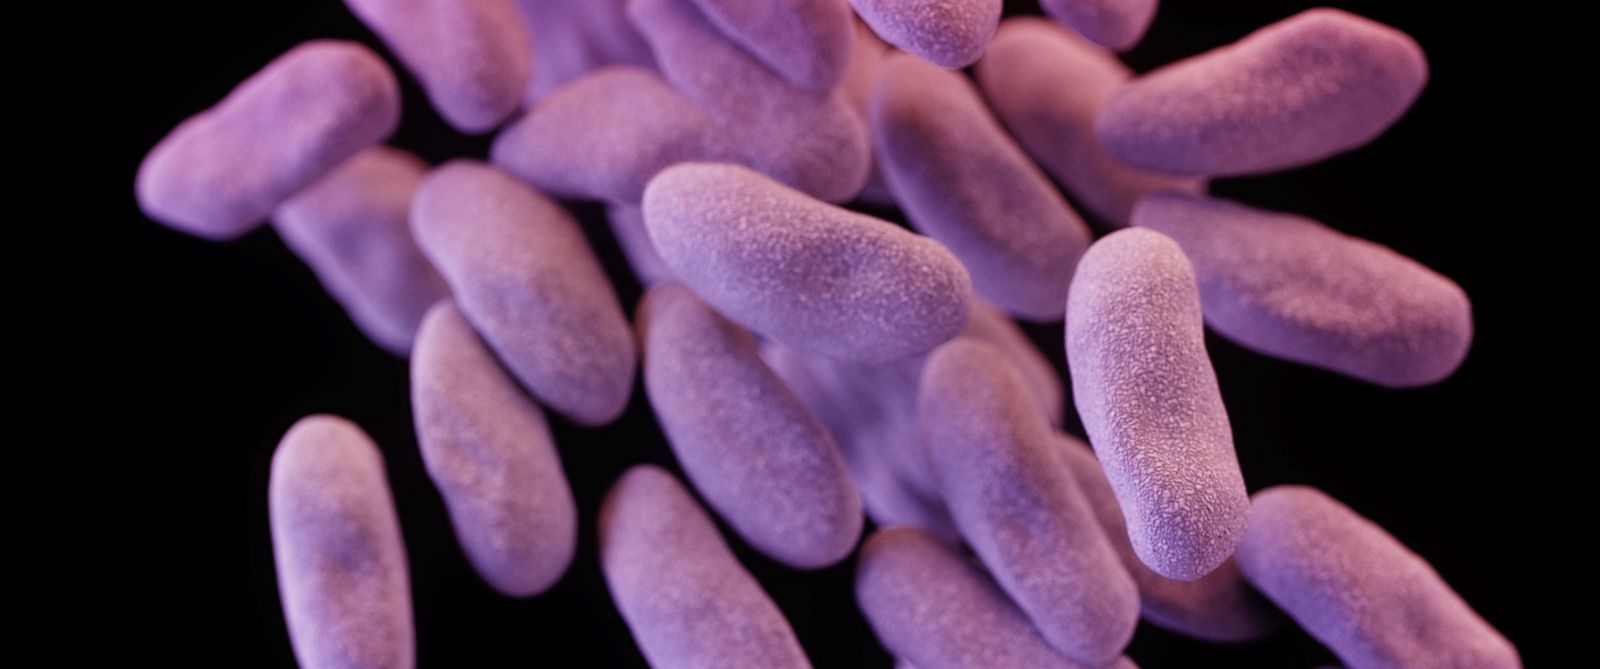 PHOTO: An illustration of a group of carbapenem-resistant Enterobacteriaceae bacteria. The image was based on scanning electron micrographic imagery.